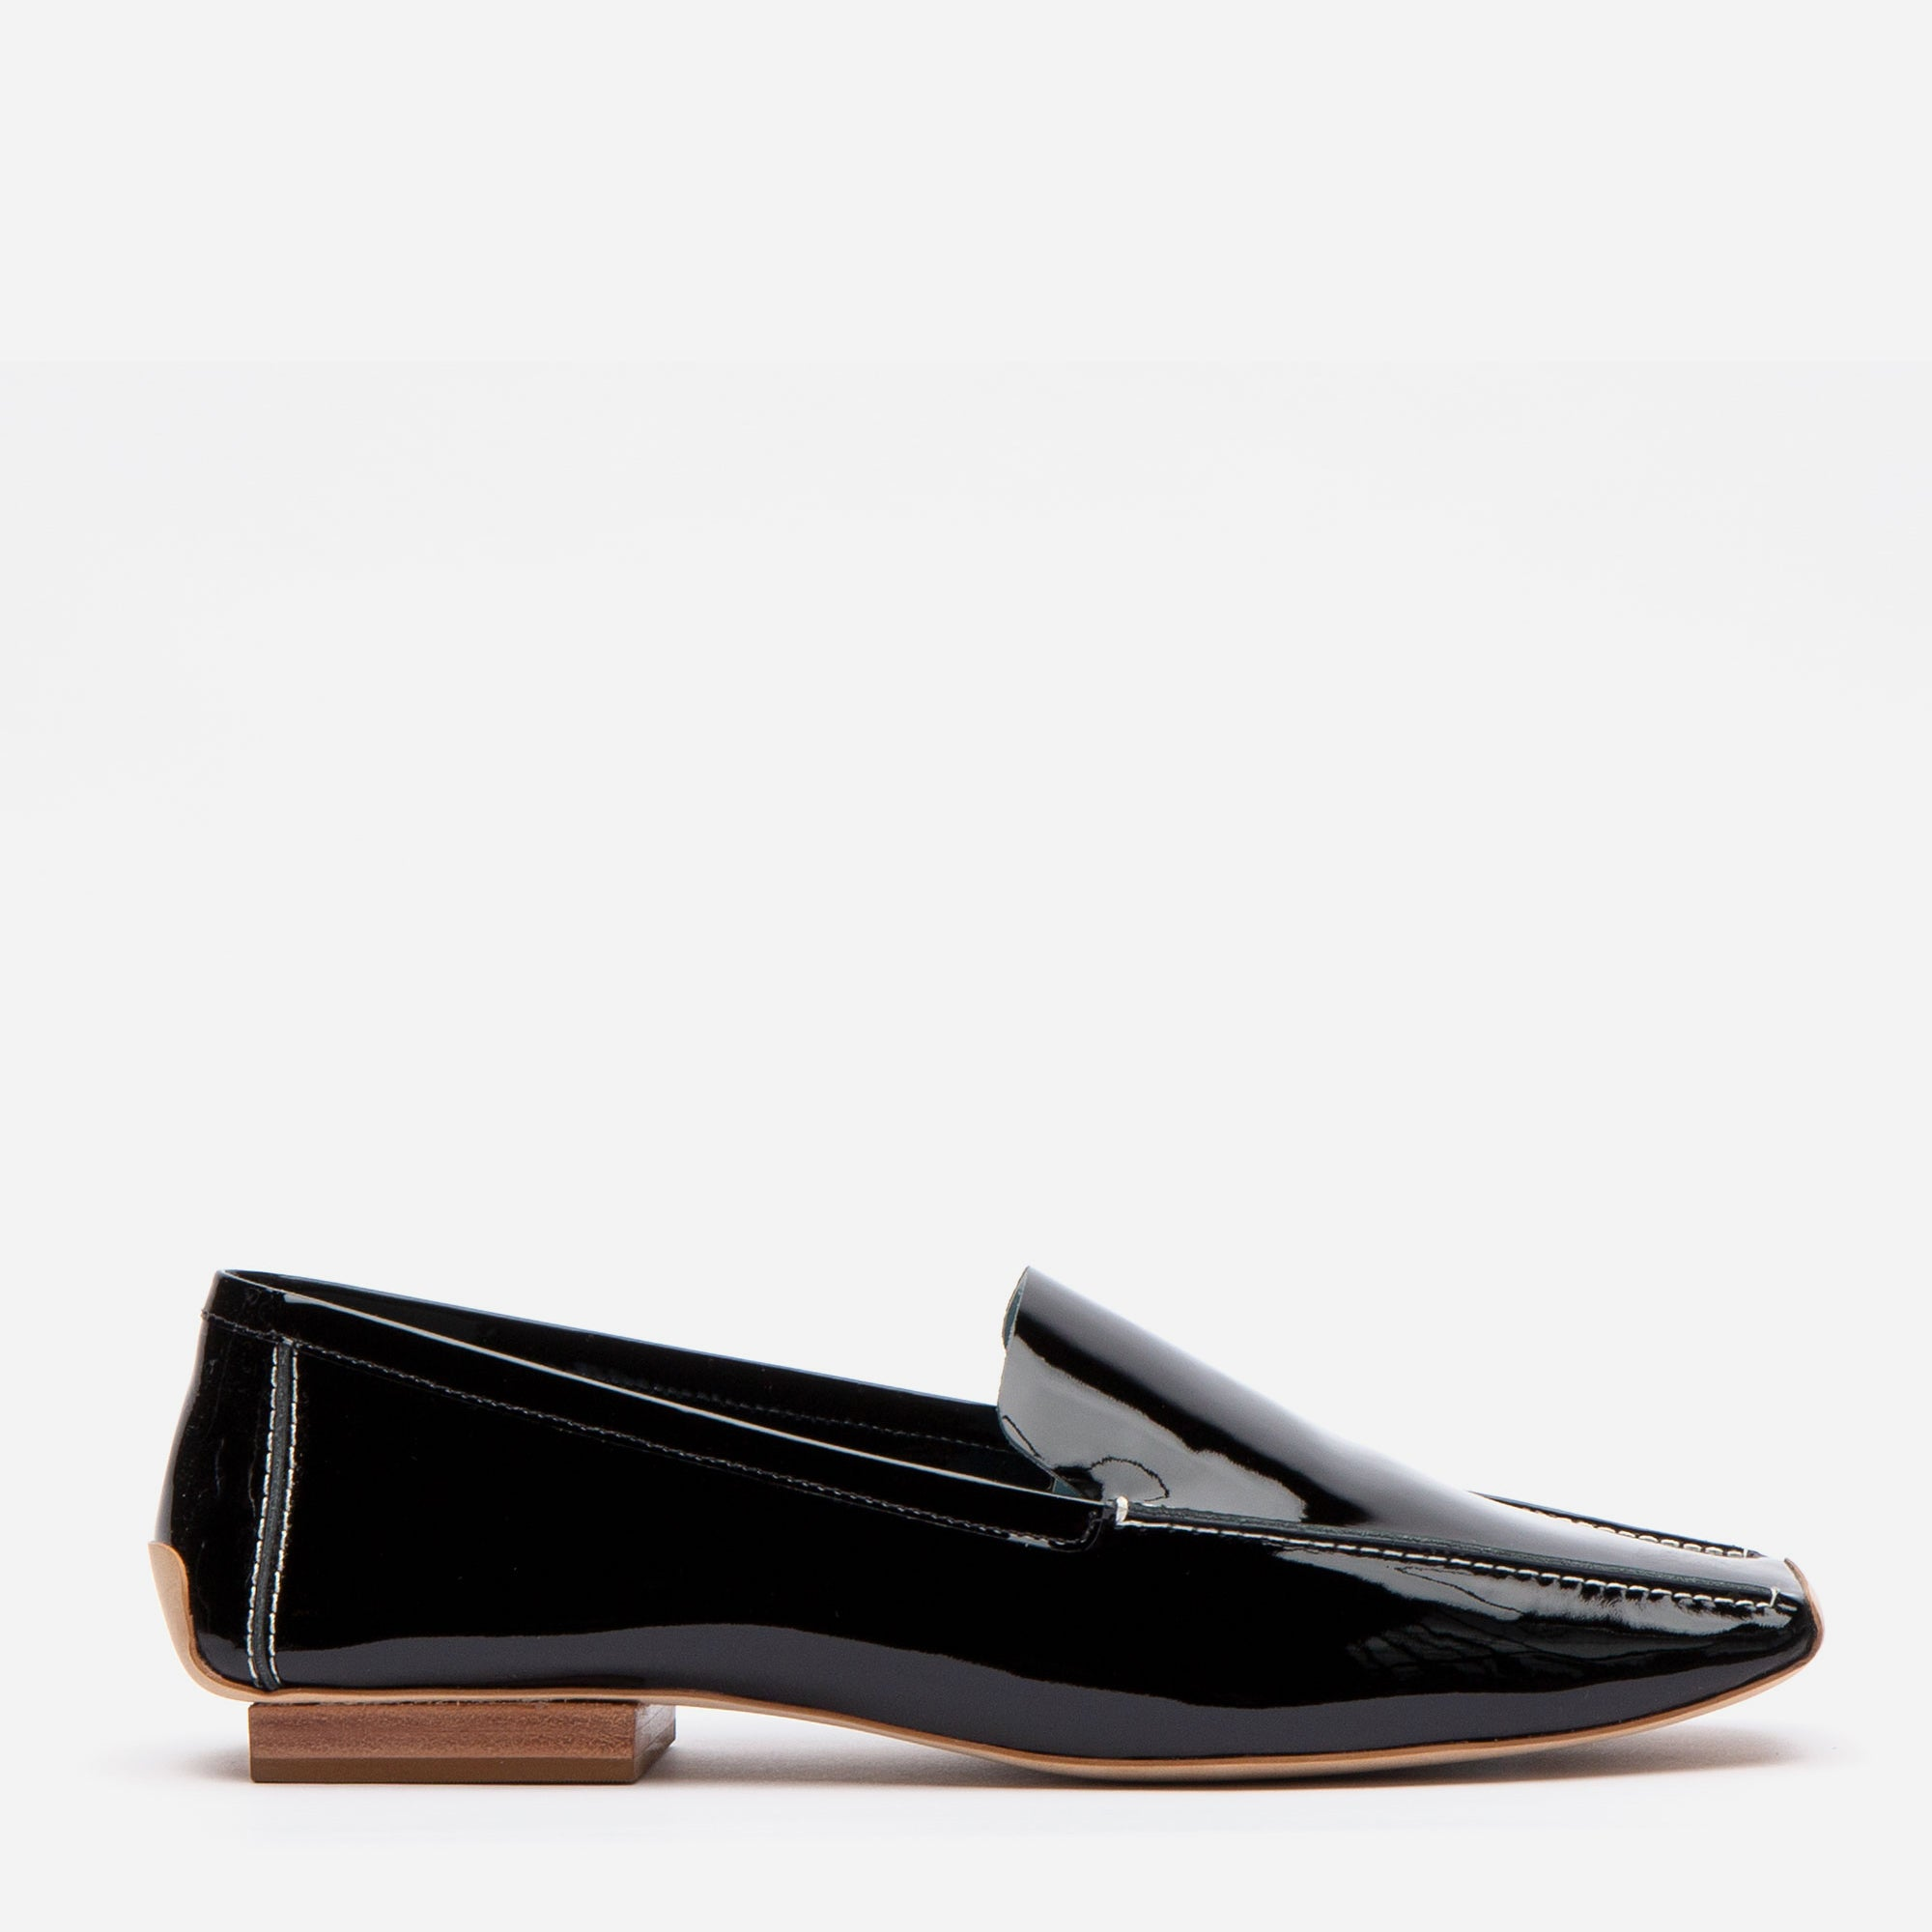 Elyce Loafer Soft Patent Black